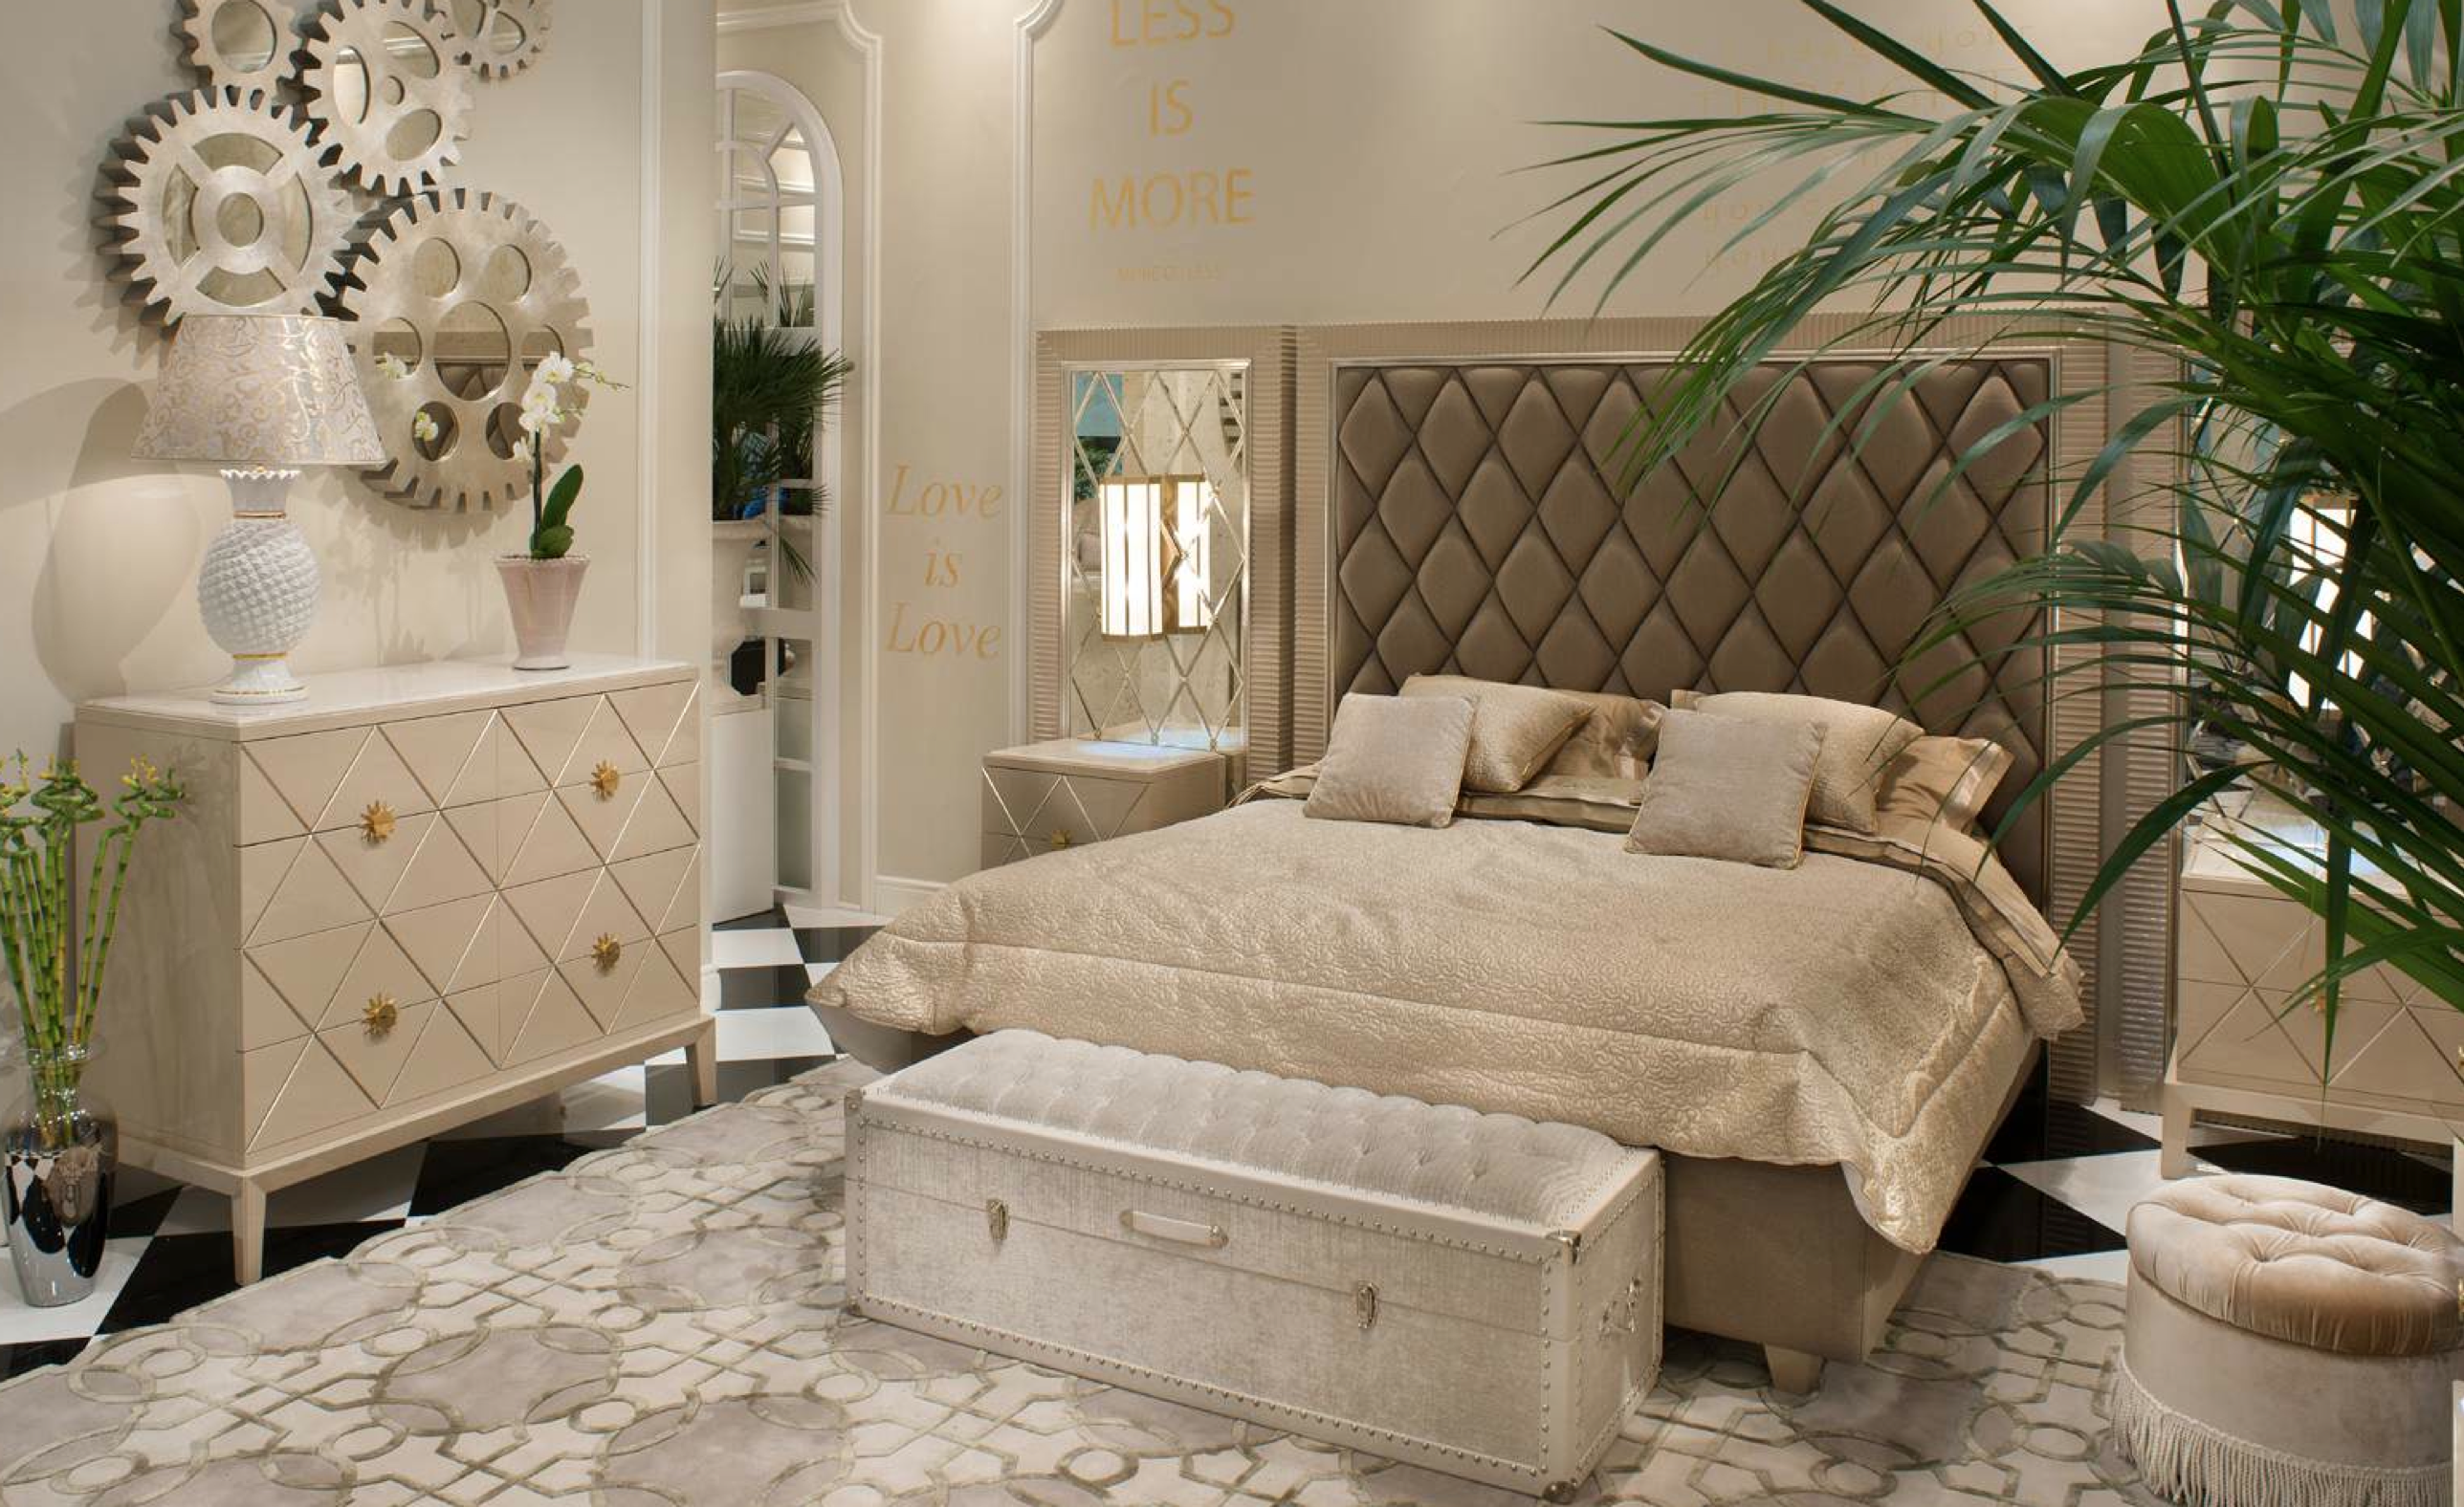 Bedroom of Great Gatsby Collection cappuccino artdeco